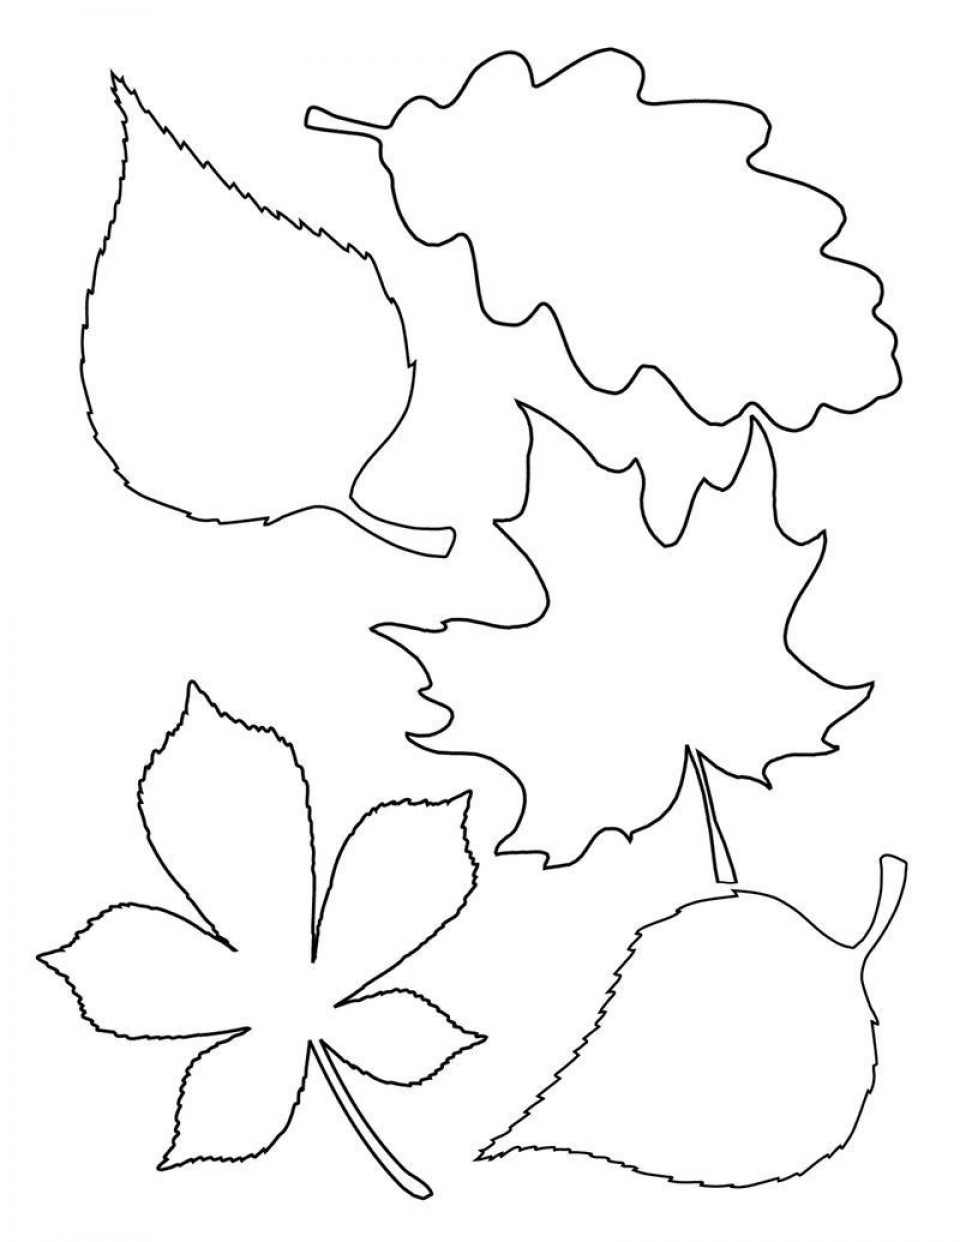 004 Astounding Leaf Template With Line Design  Fall Printable Blank960